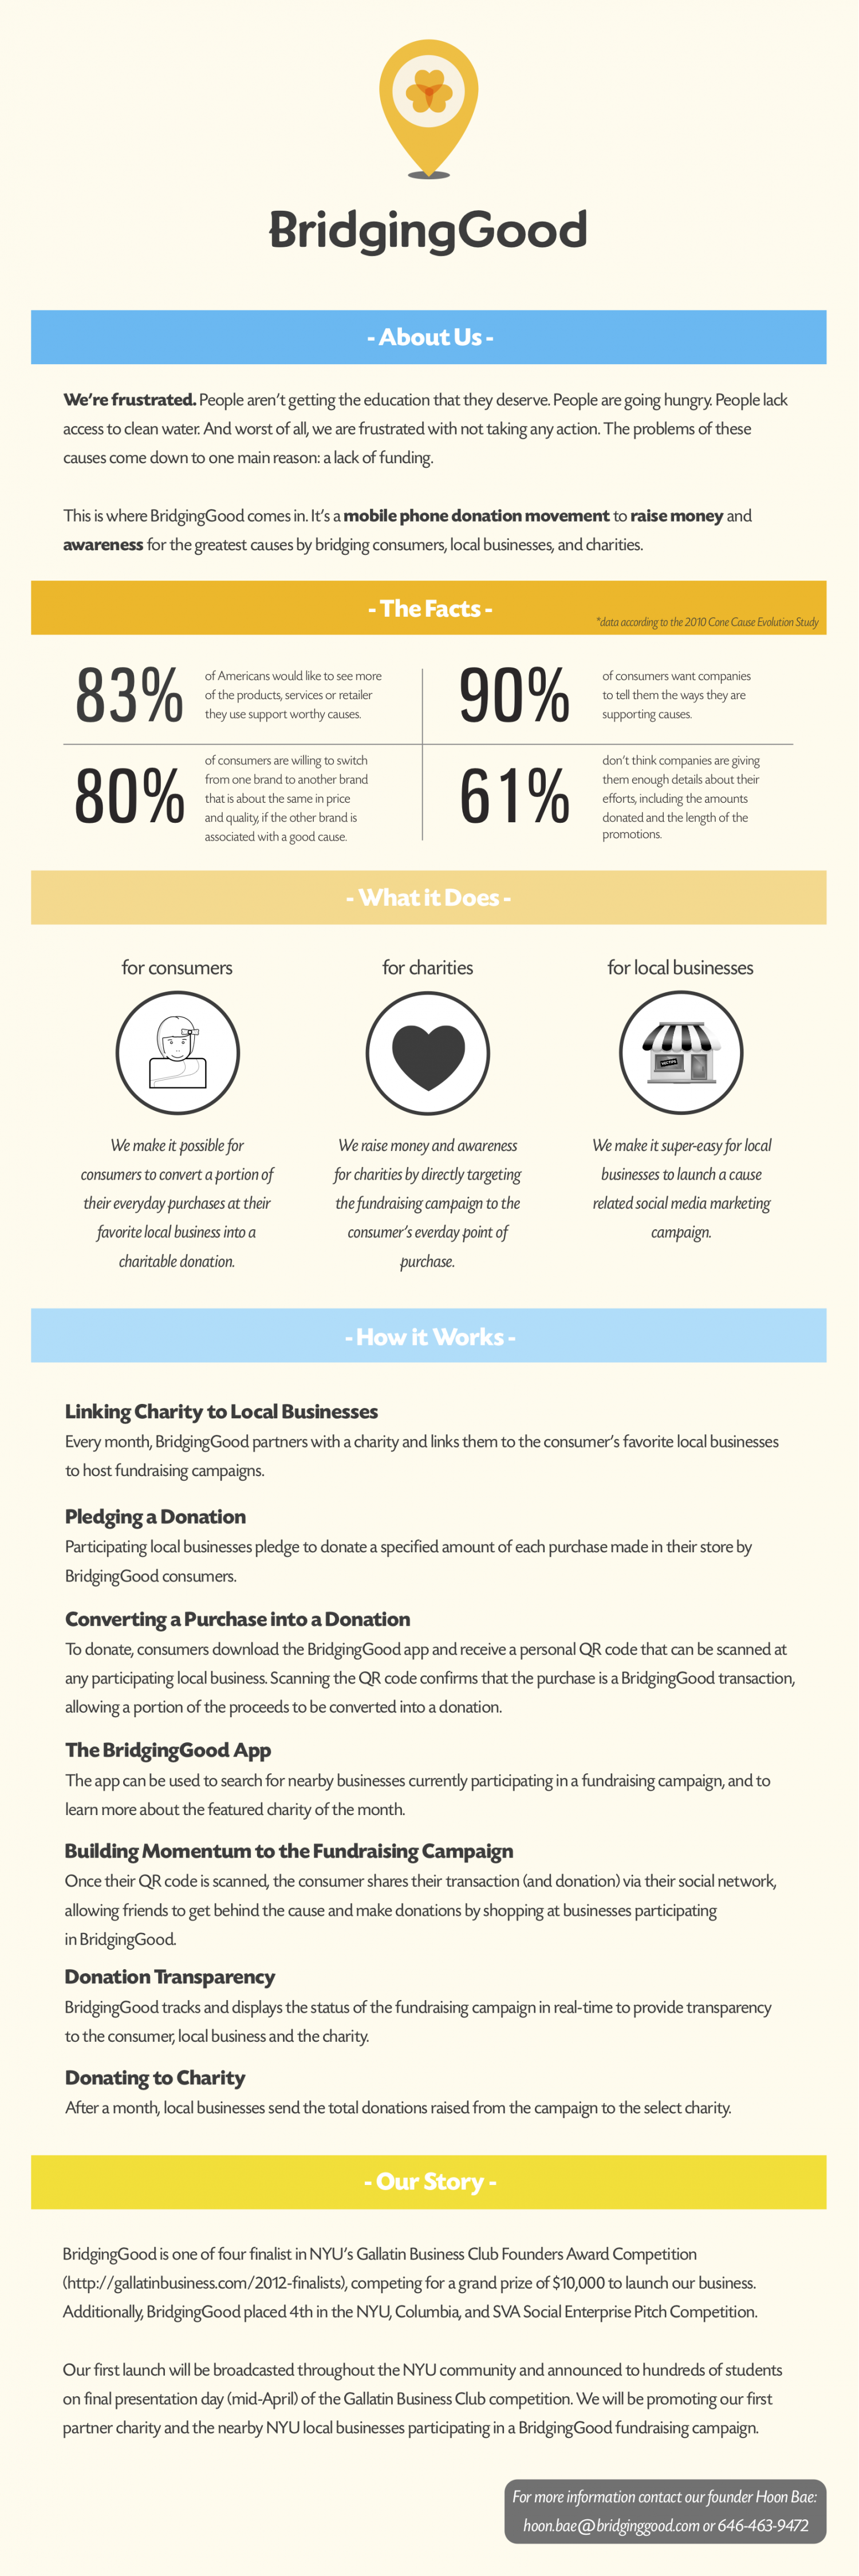 About BridgingGood Infographic